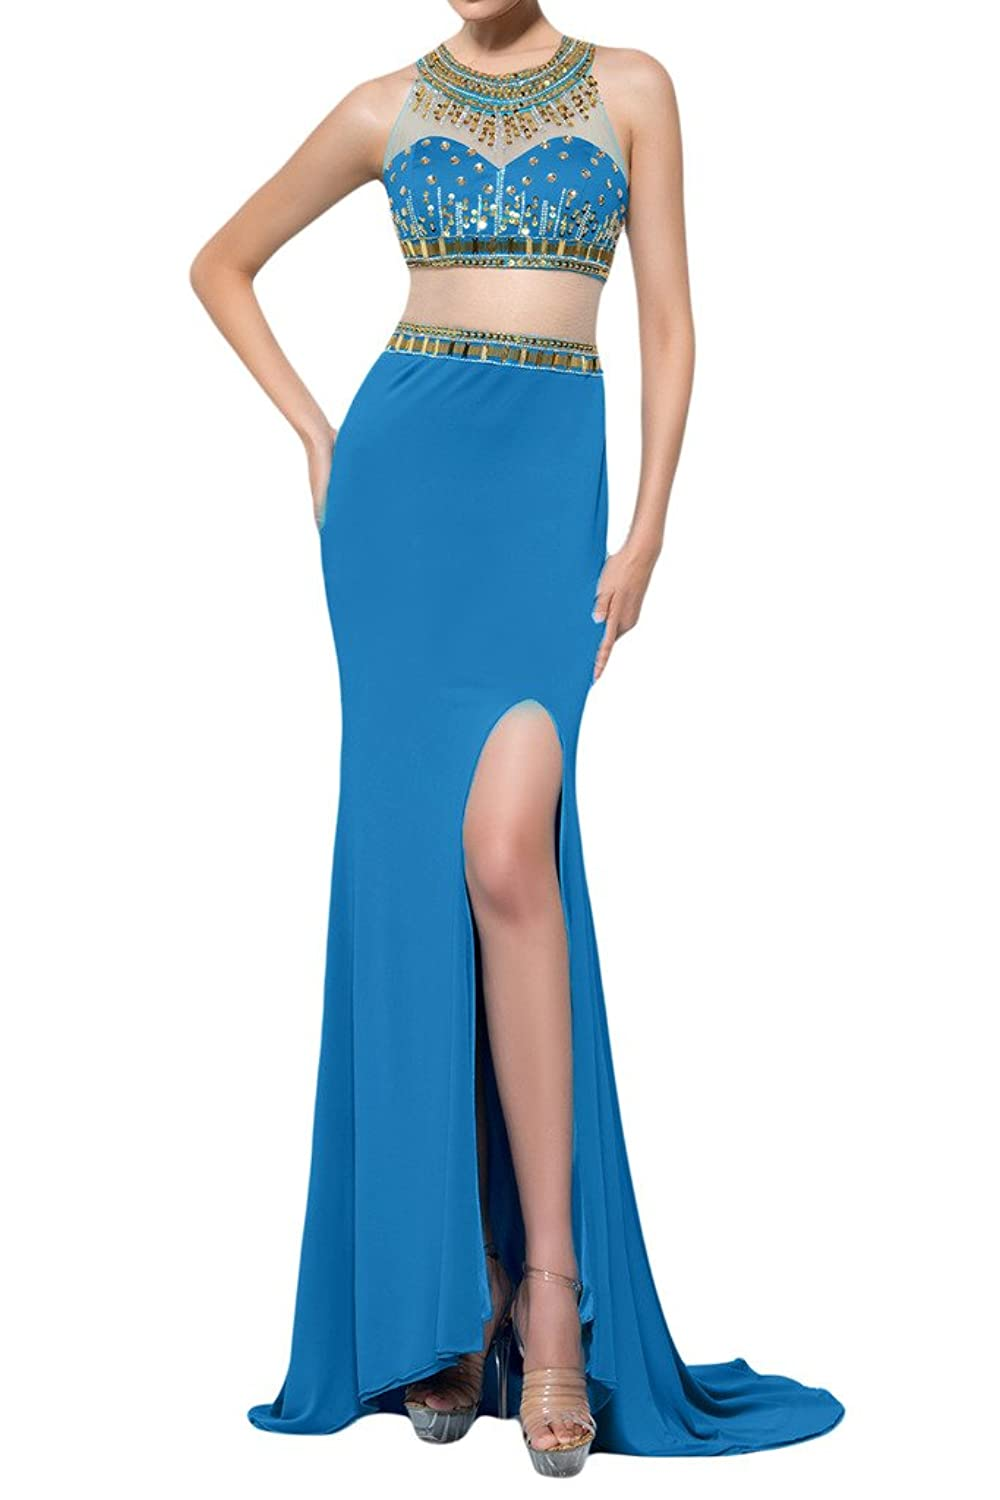 Sunvary Sheath Slide Slit Two Pieces with Chapel Train Party Gowns Evening Dresses